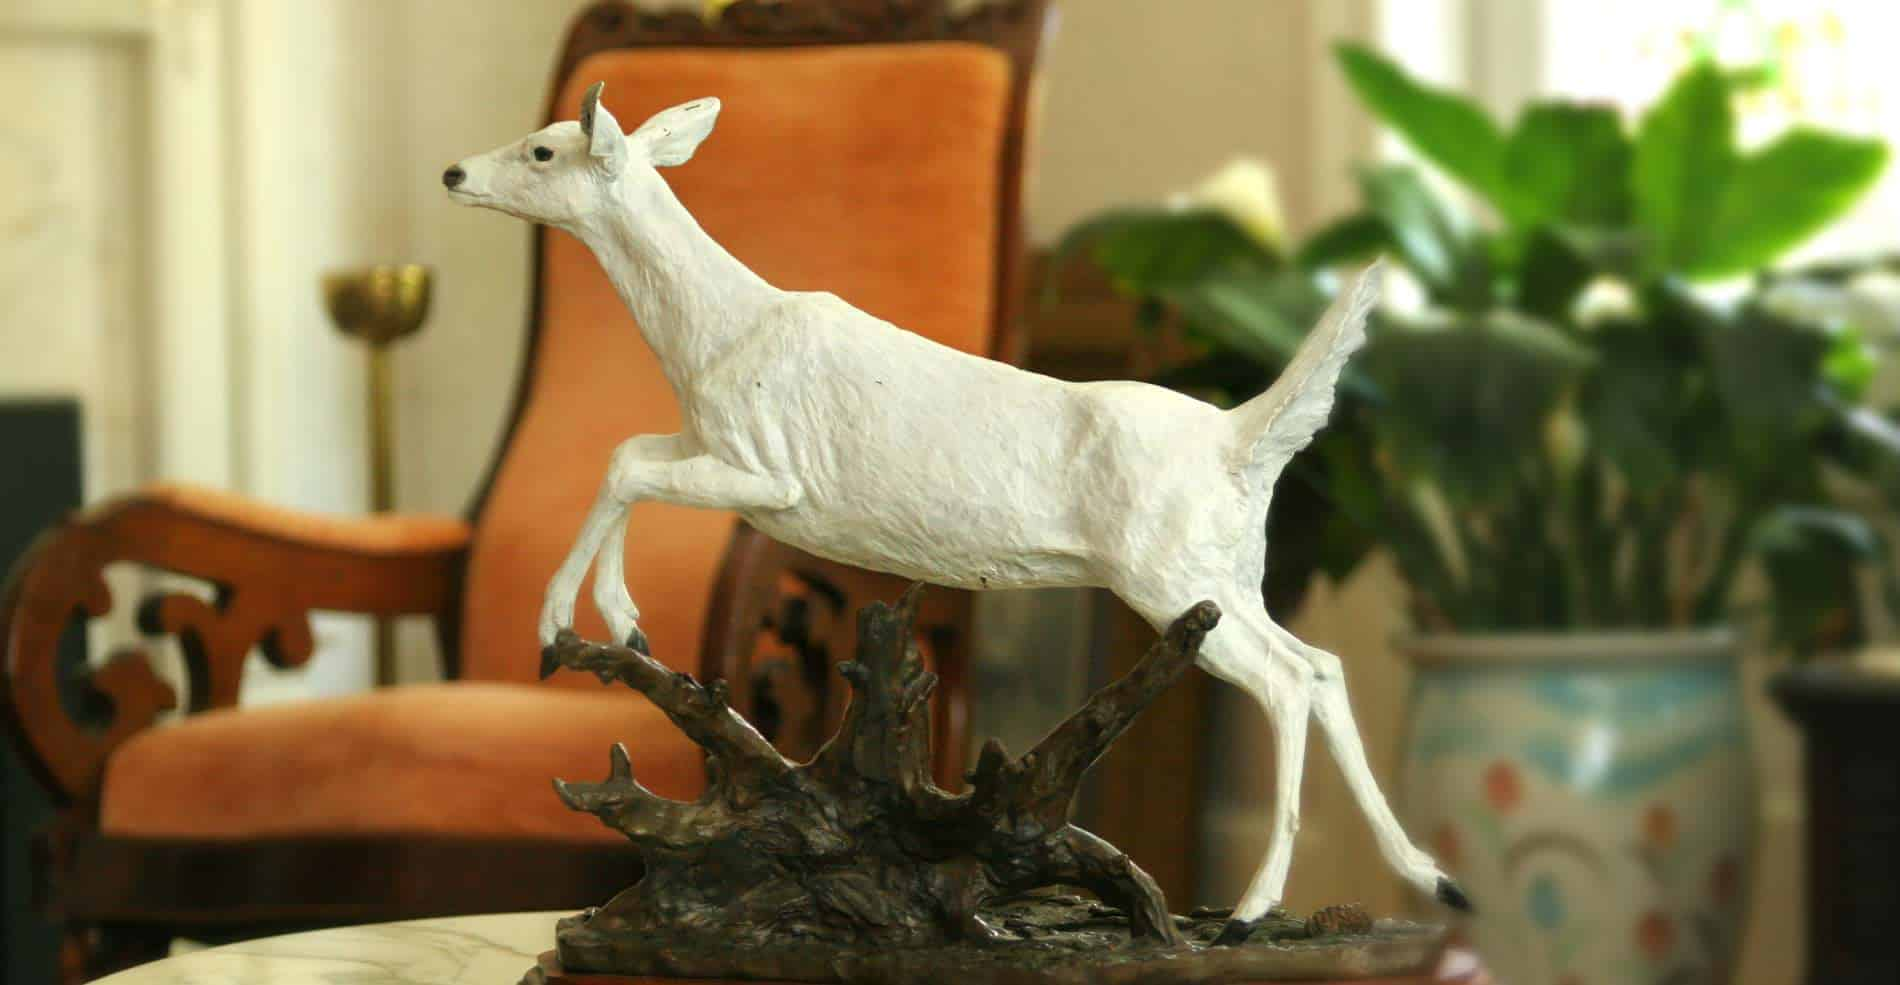 A close up of a small white doe statue, an orange chair and bright green plant in background